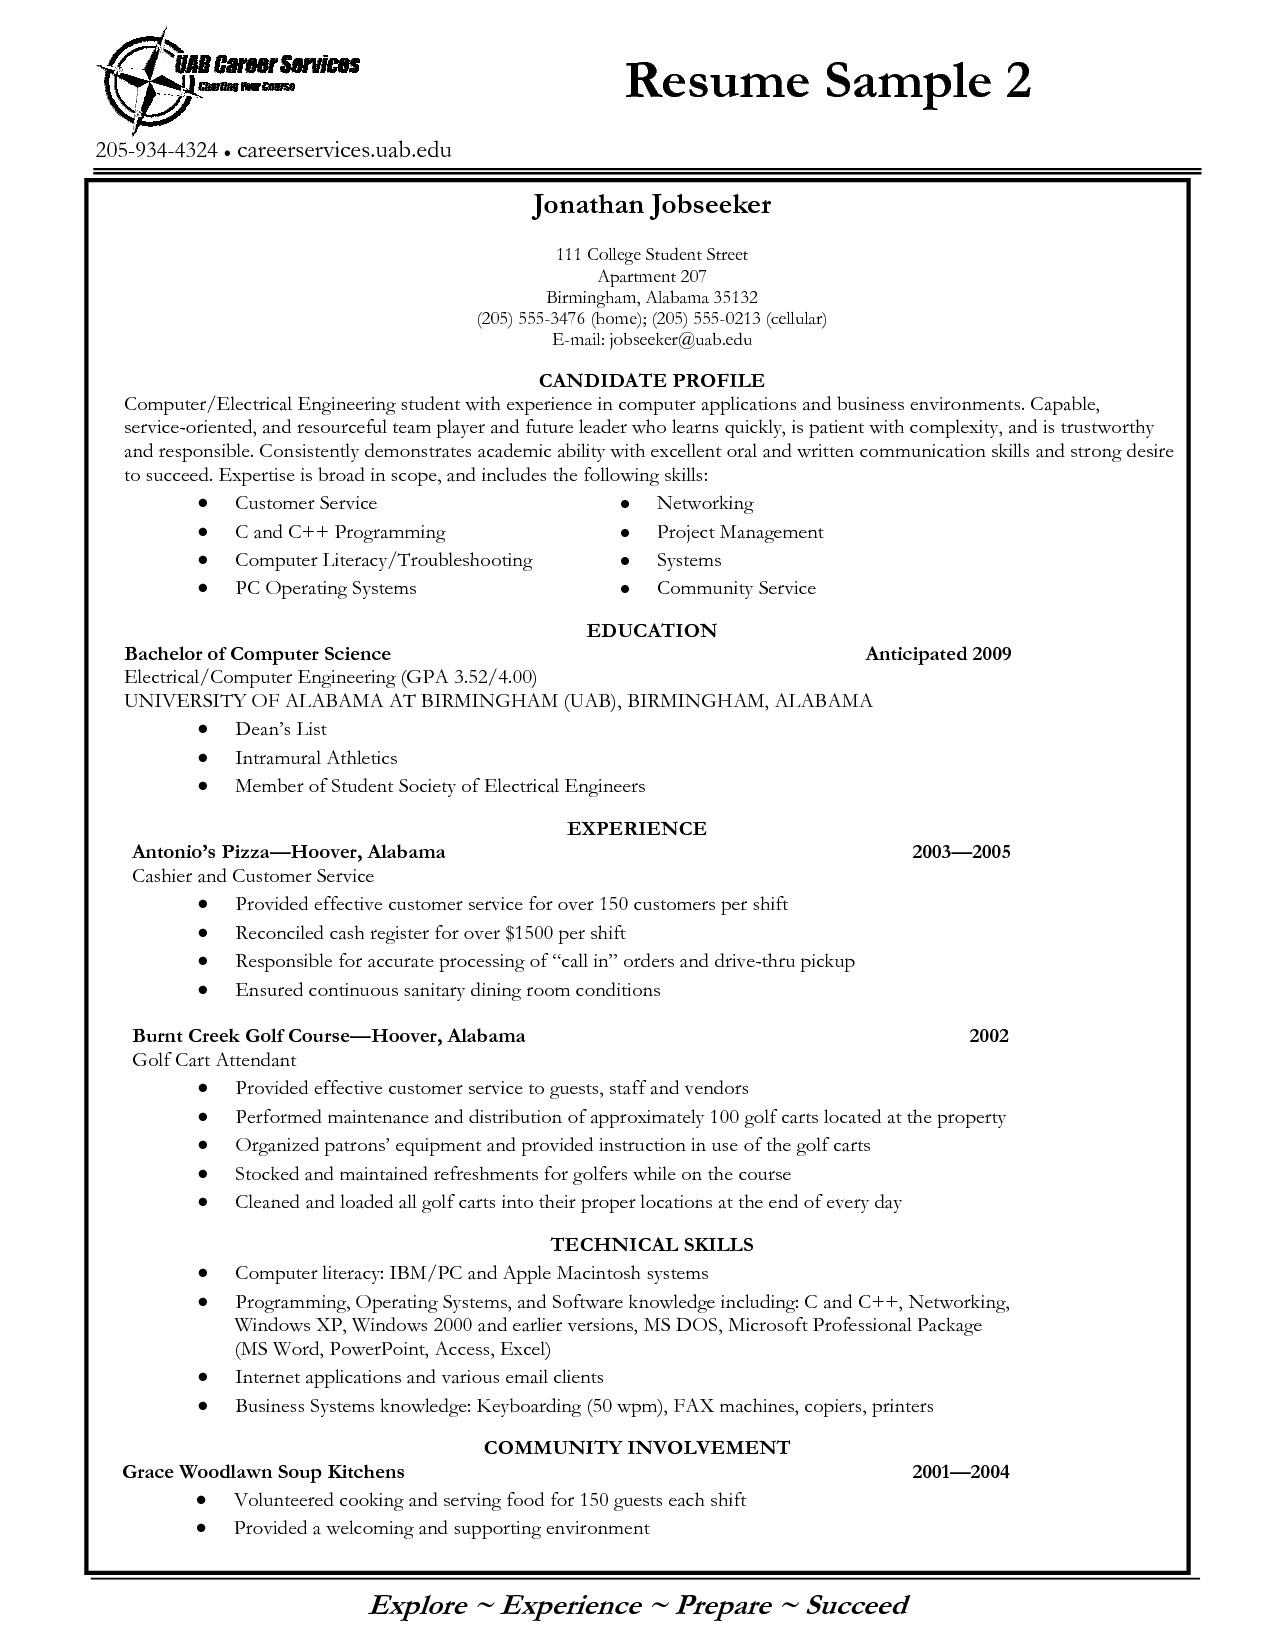 tags college graduate resume no experience college graduate resume - Sample College Resumes